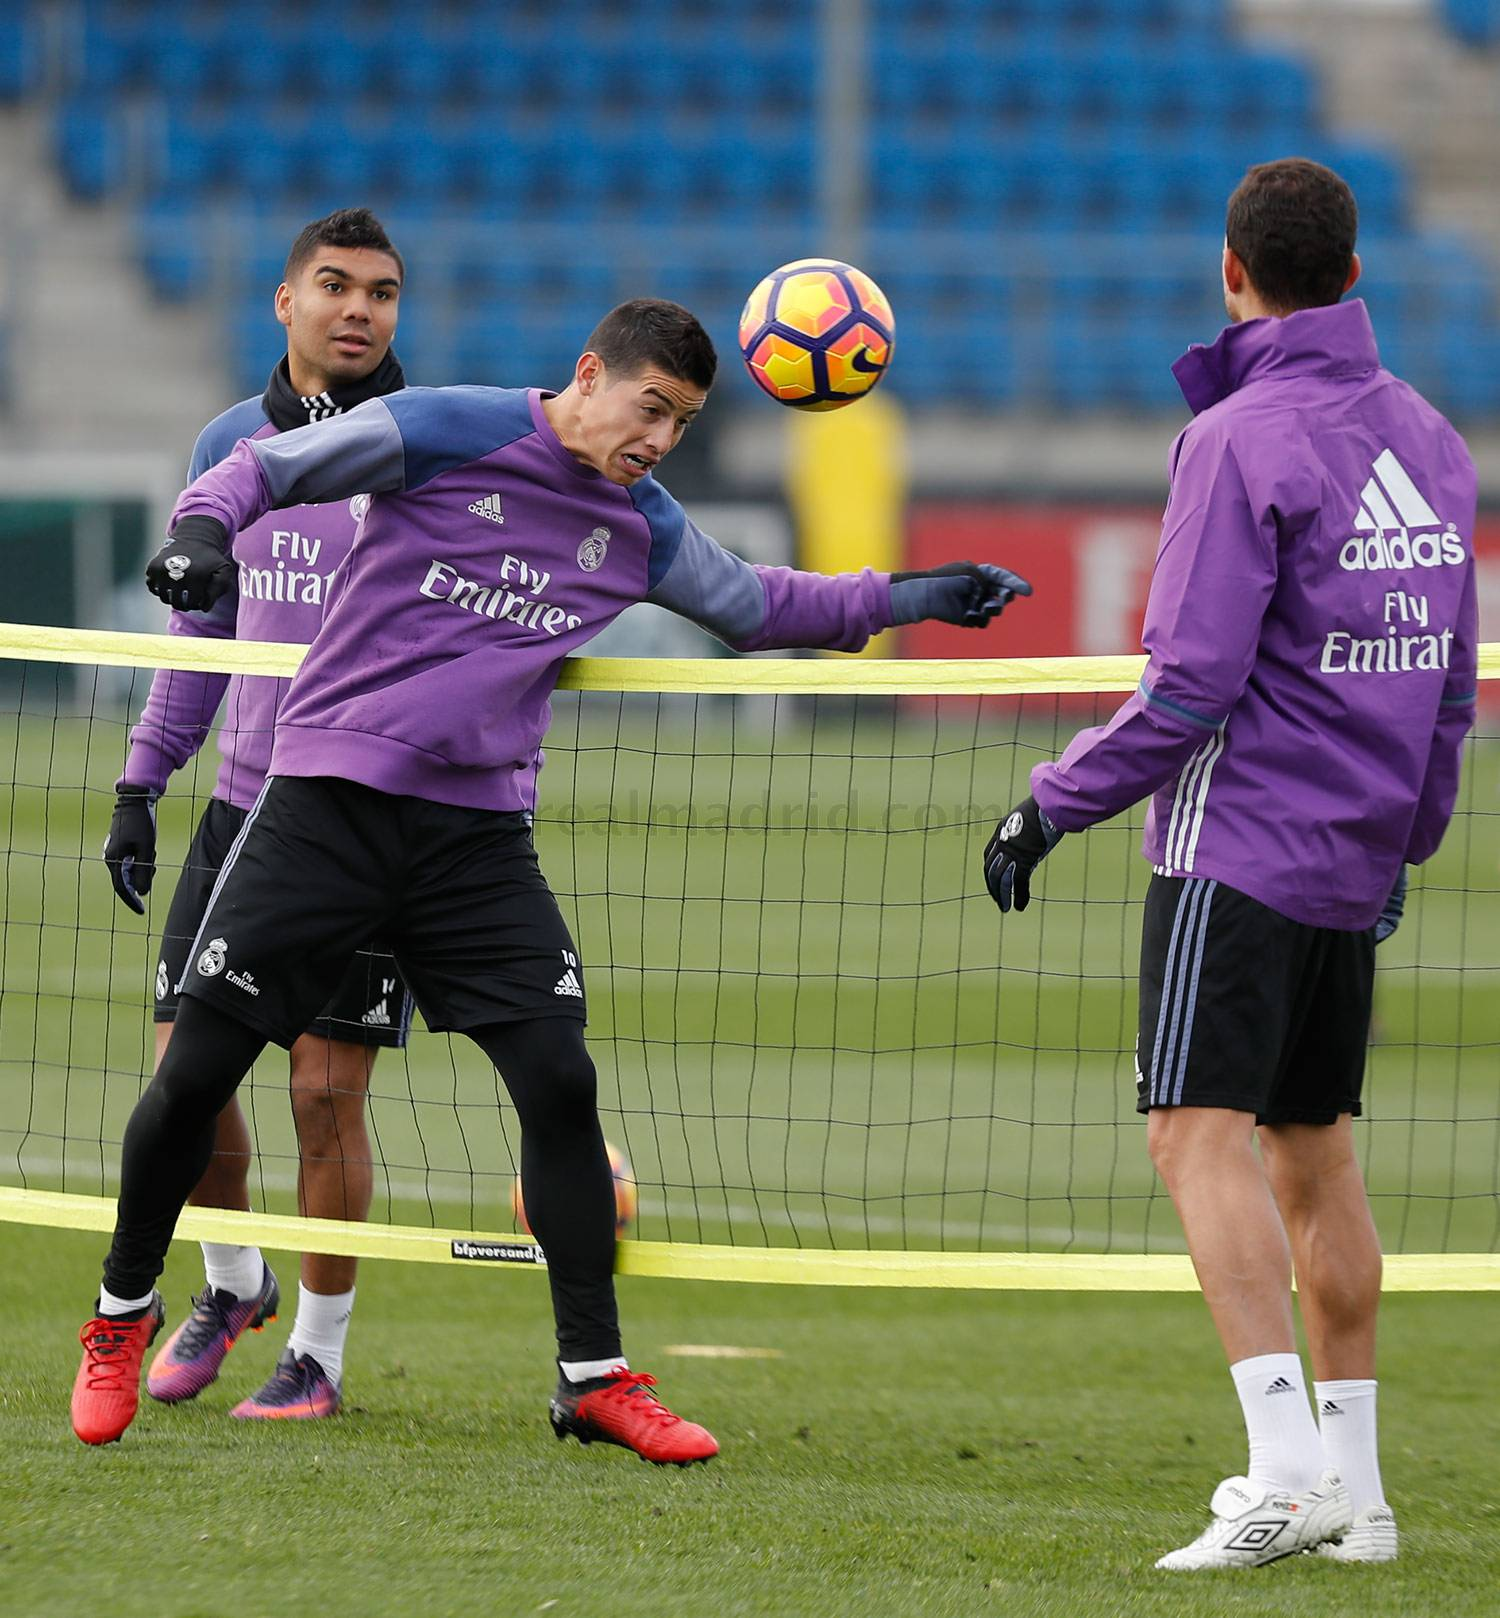 Real Madrid - Entrenamiento del Real Madrid - 24-11-2016